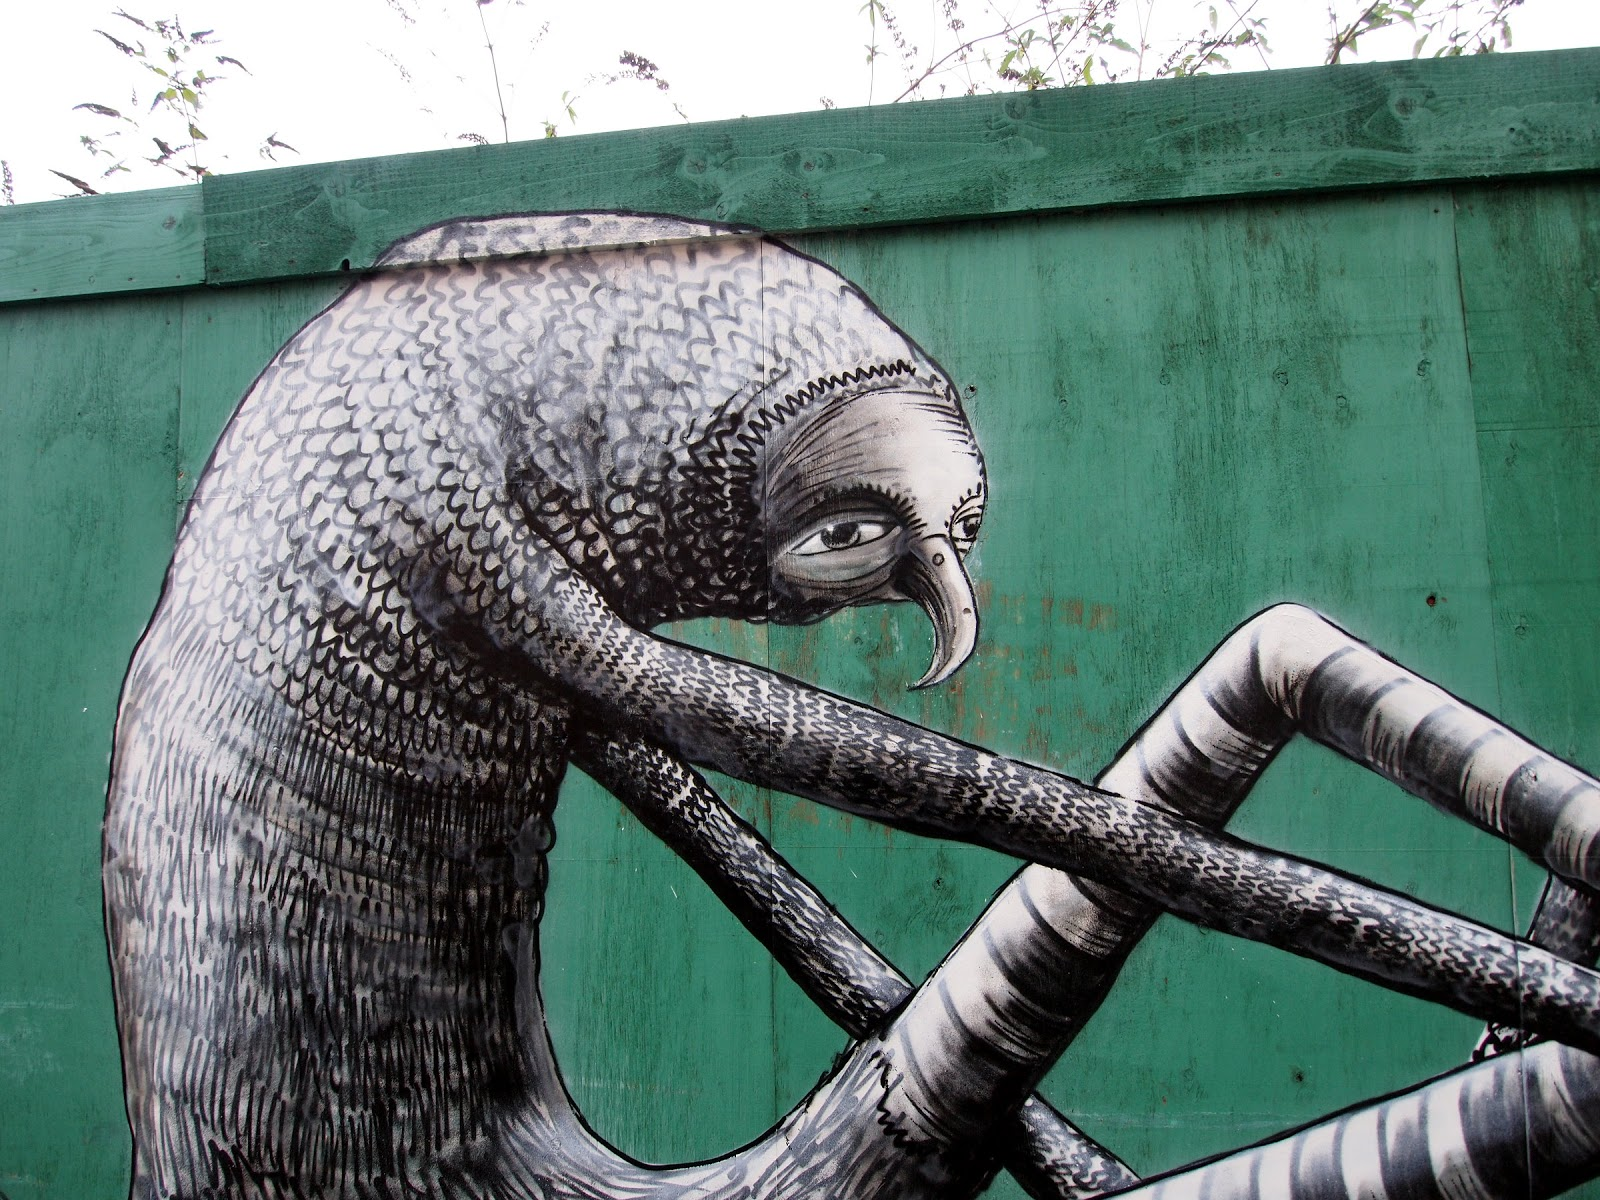 phlegm New animal in town